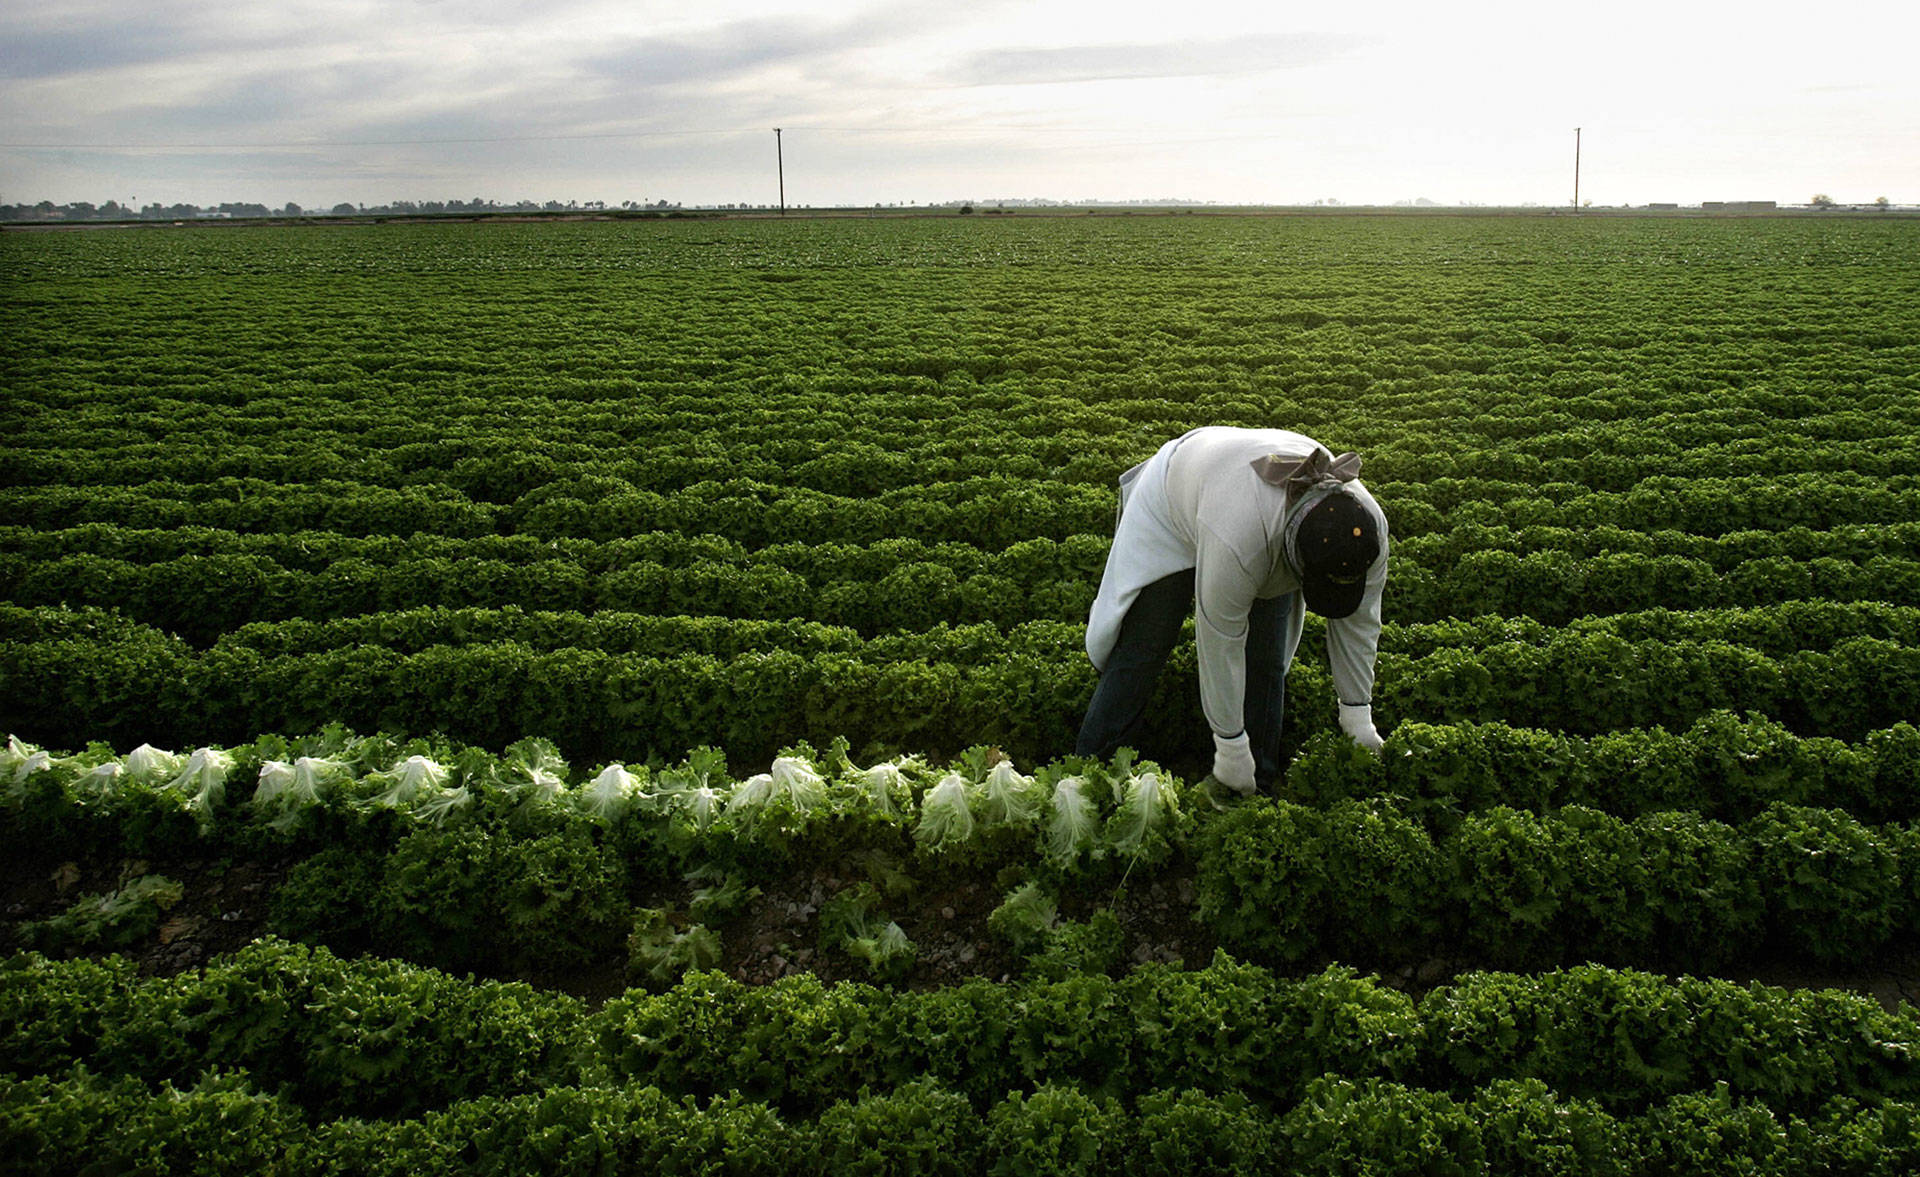 A farmworker harvests lettuce near Calexico. HECTOR MATA/AFP/Getty Images